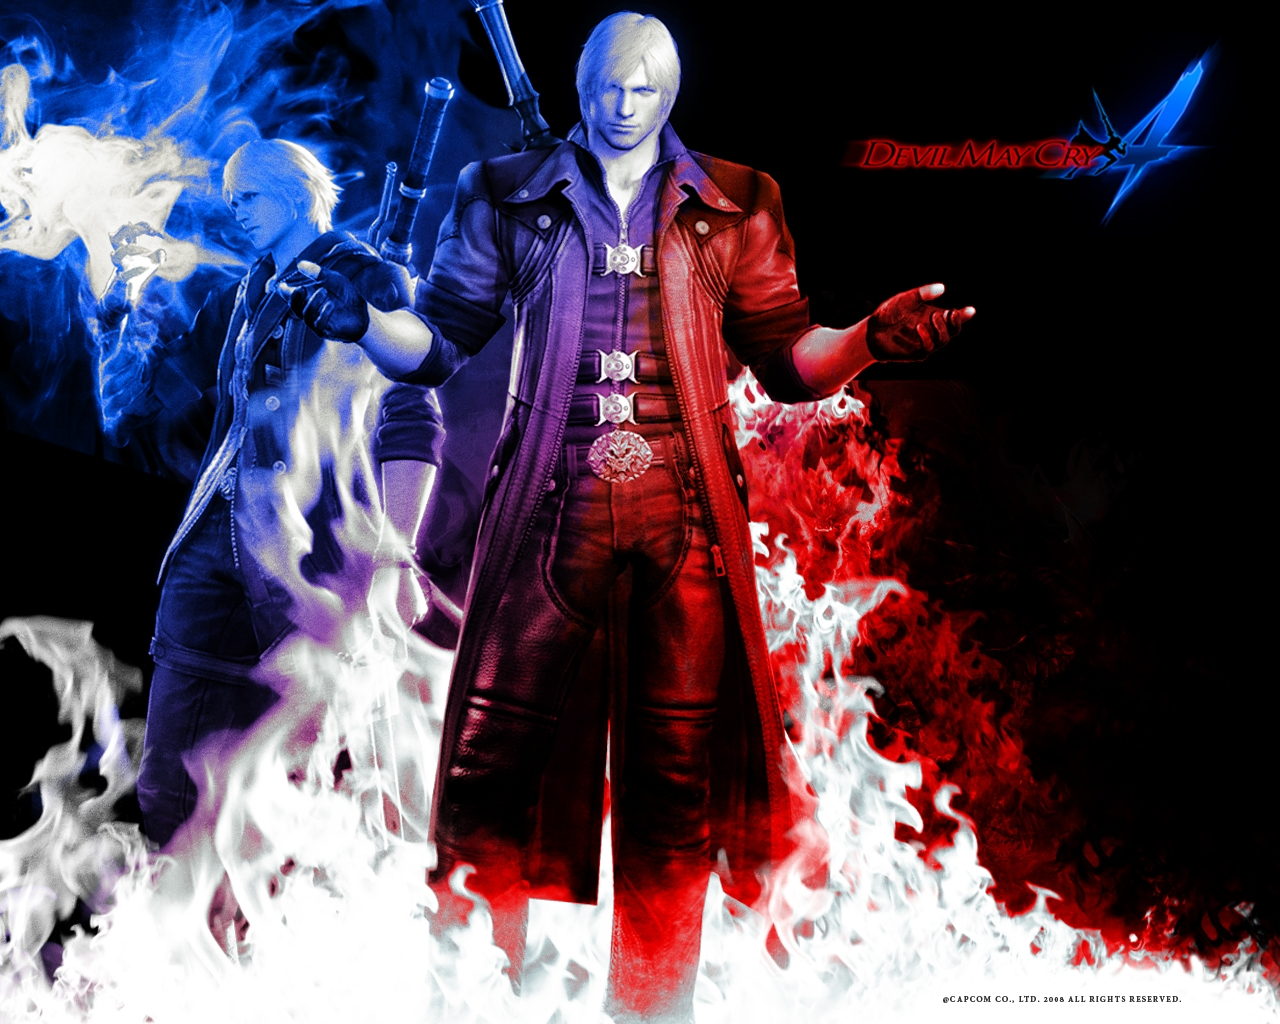 trololo blogg: dante wallpaper devil may cry